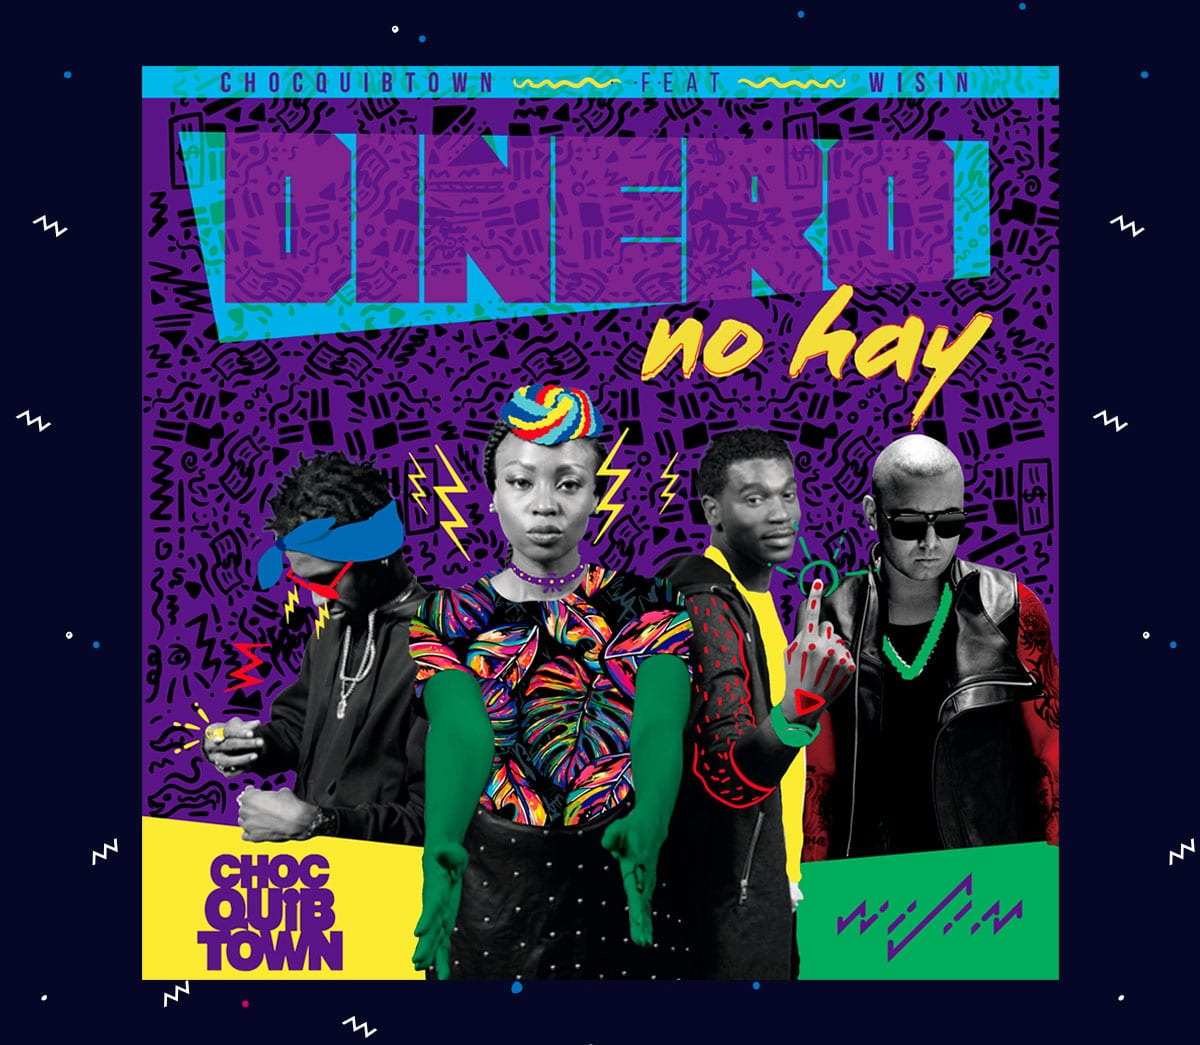 ChocQuibTown (Dinero no Hay) CD Cover